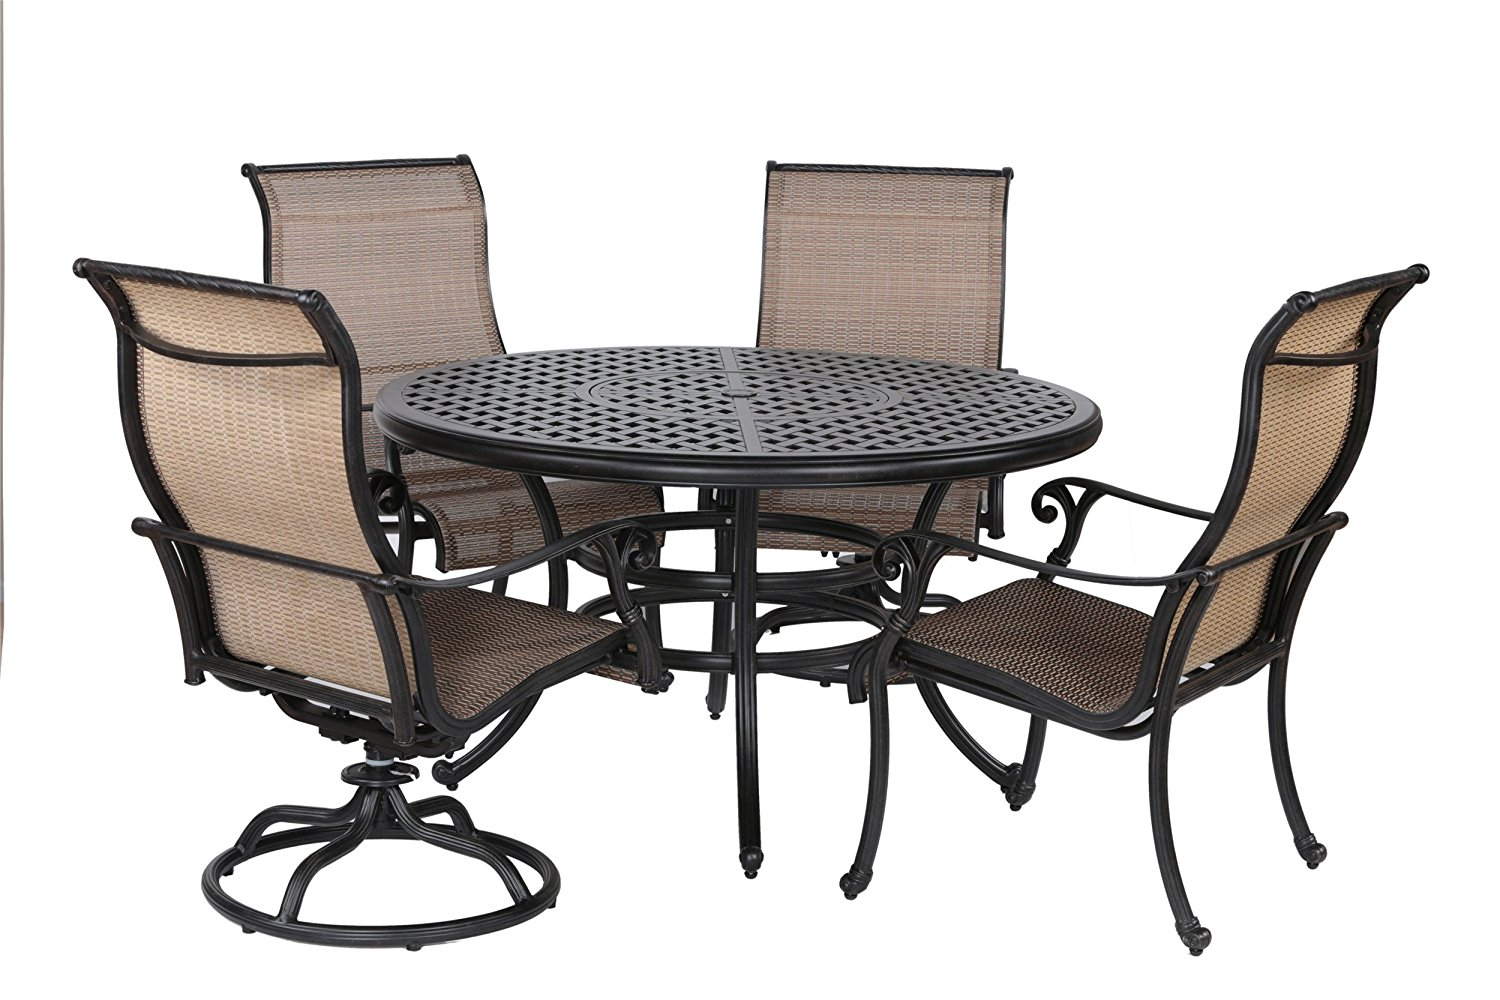 "iPatio Sparta 5pc Sling Dining Set, 52"" Round Table"